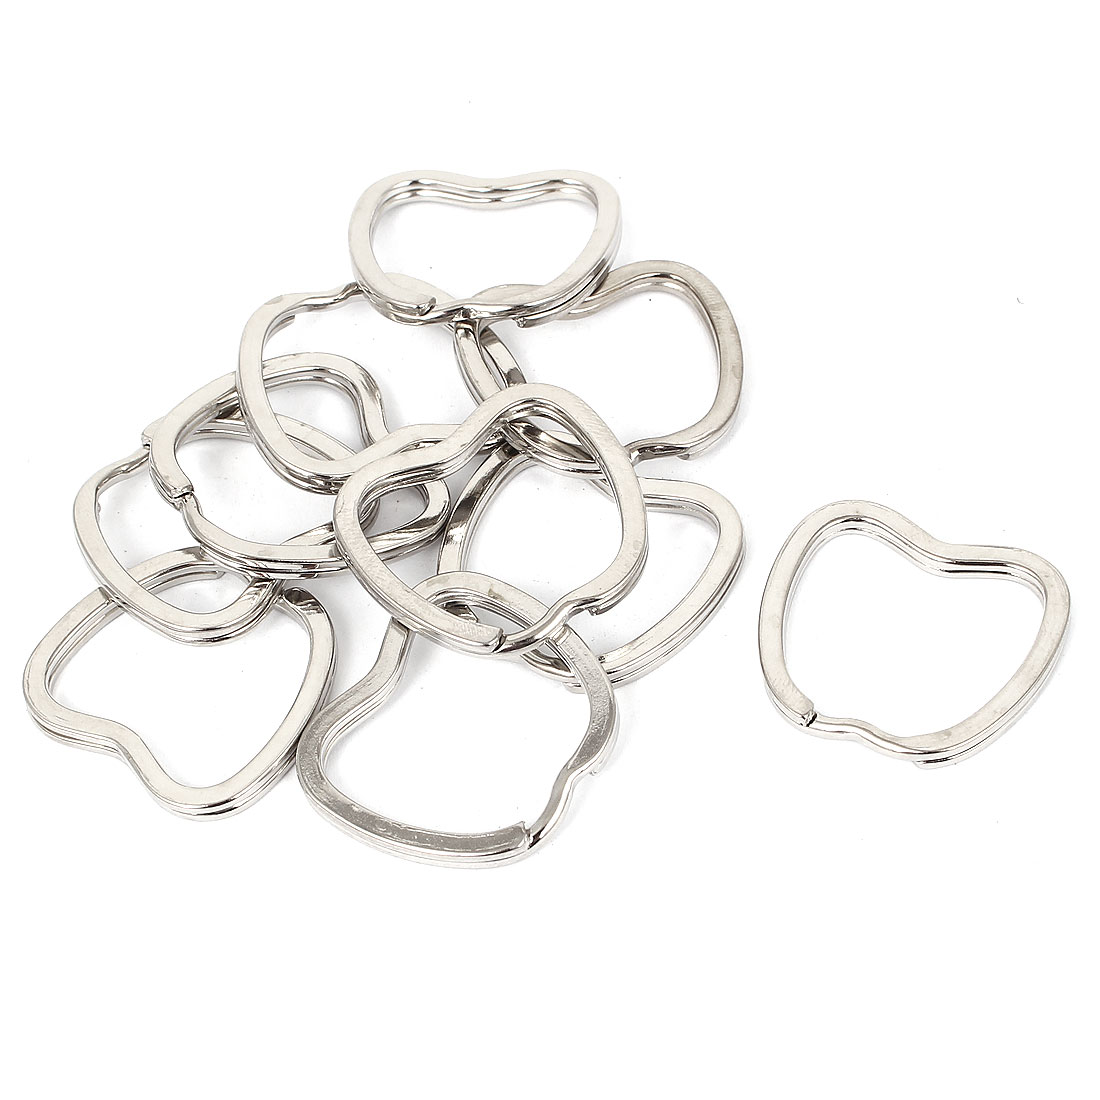 Metal Apple Shape Key Ring Findings Keyring Circles Silver Tone 10pcs